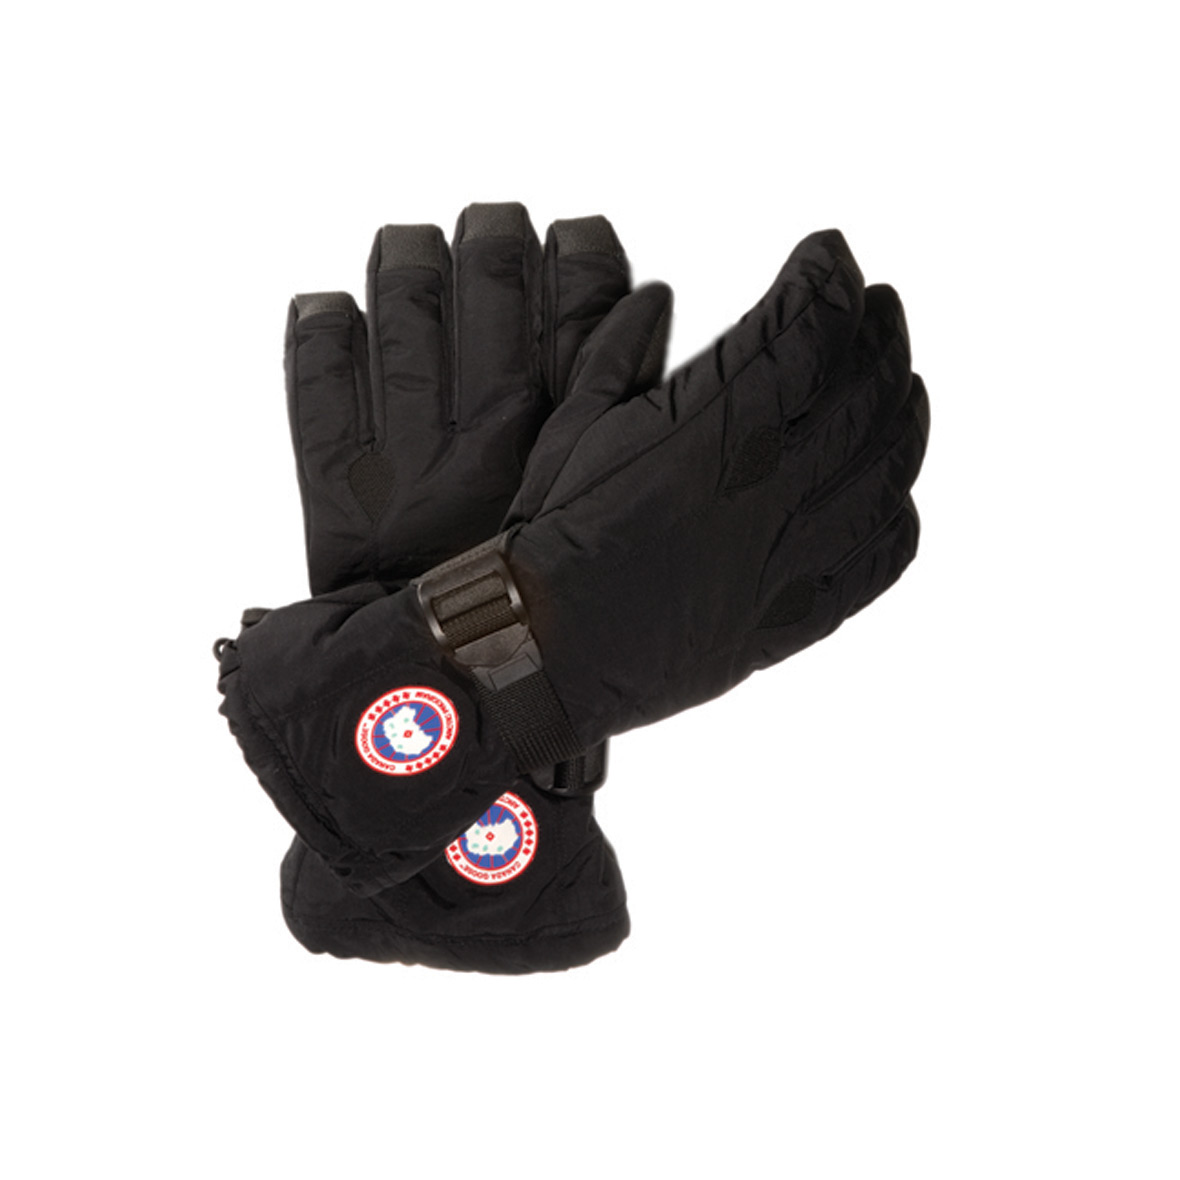 Canada Goose Unisex Adult Down Glove BLACK